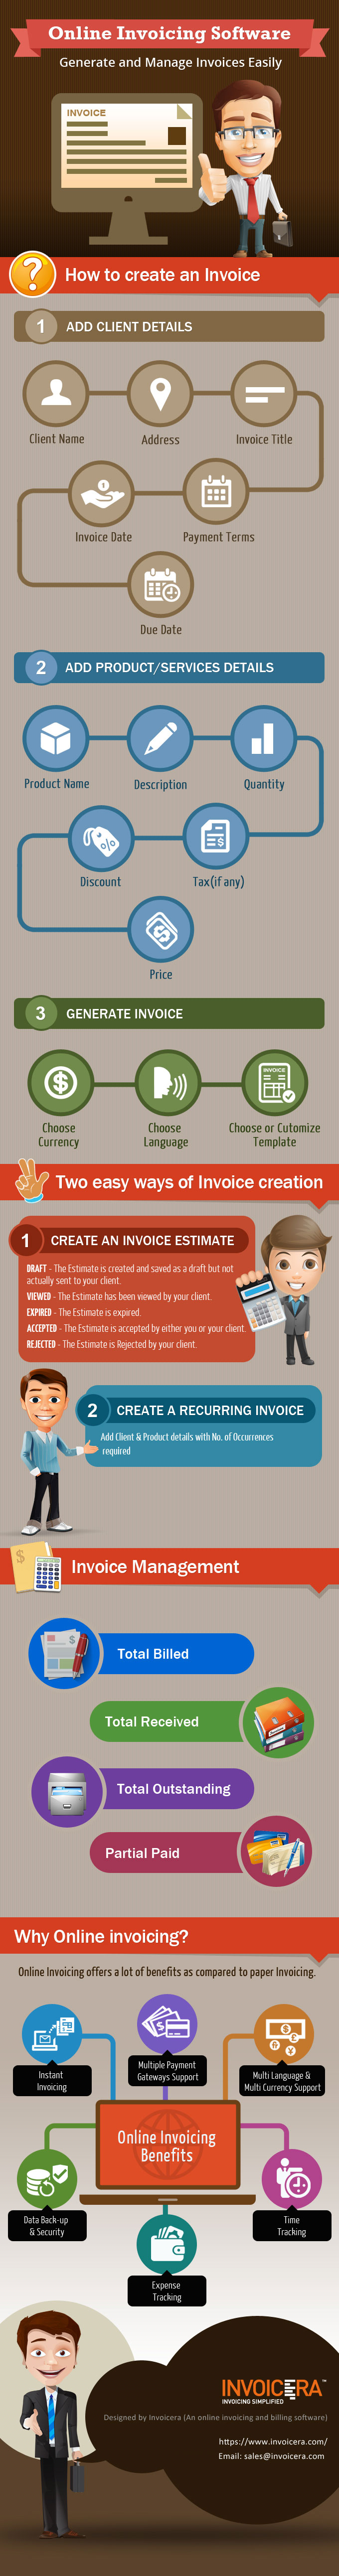 infographic-online-billing-(copy)124